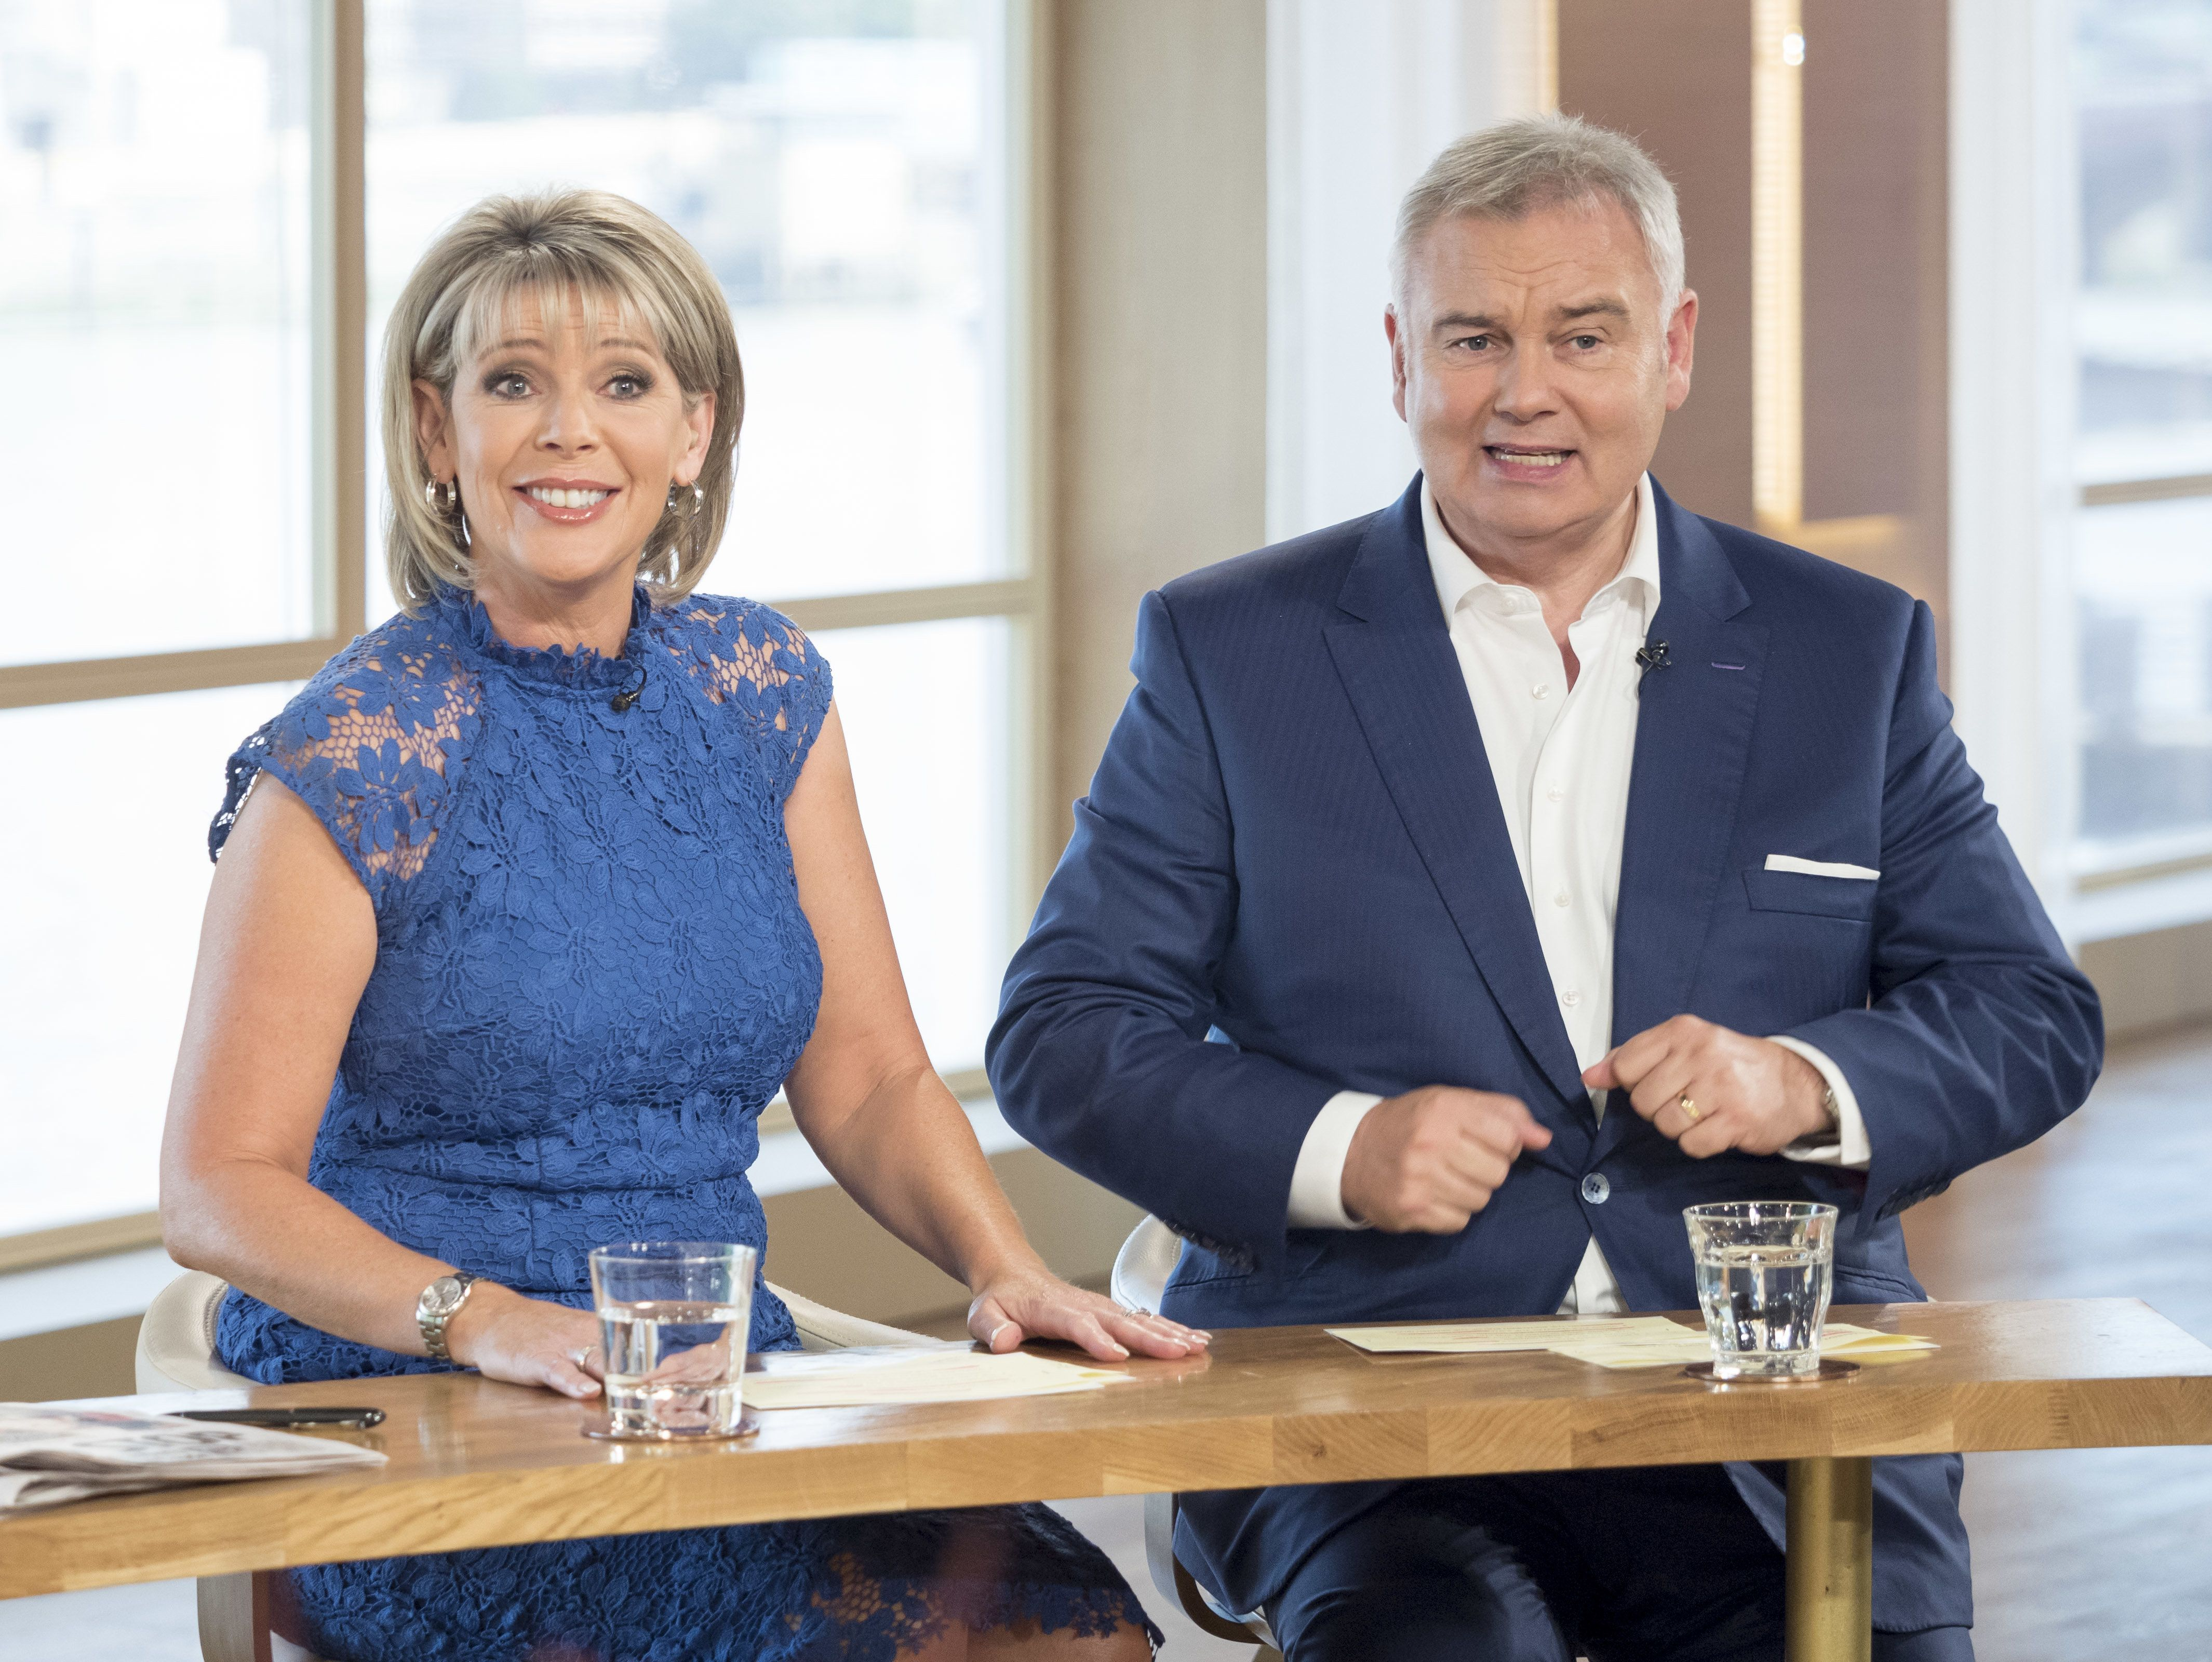 Eamonn has been supportive of Ruth's decision to do 'Strictly' - despite his